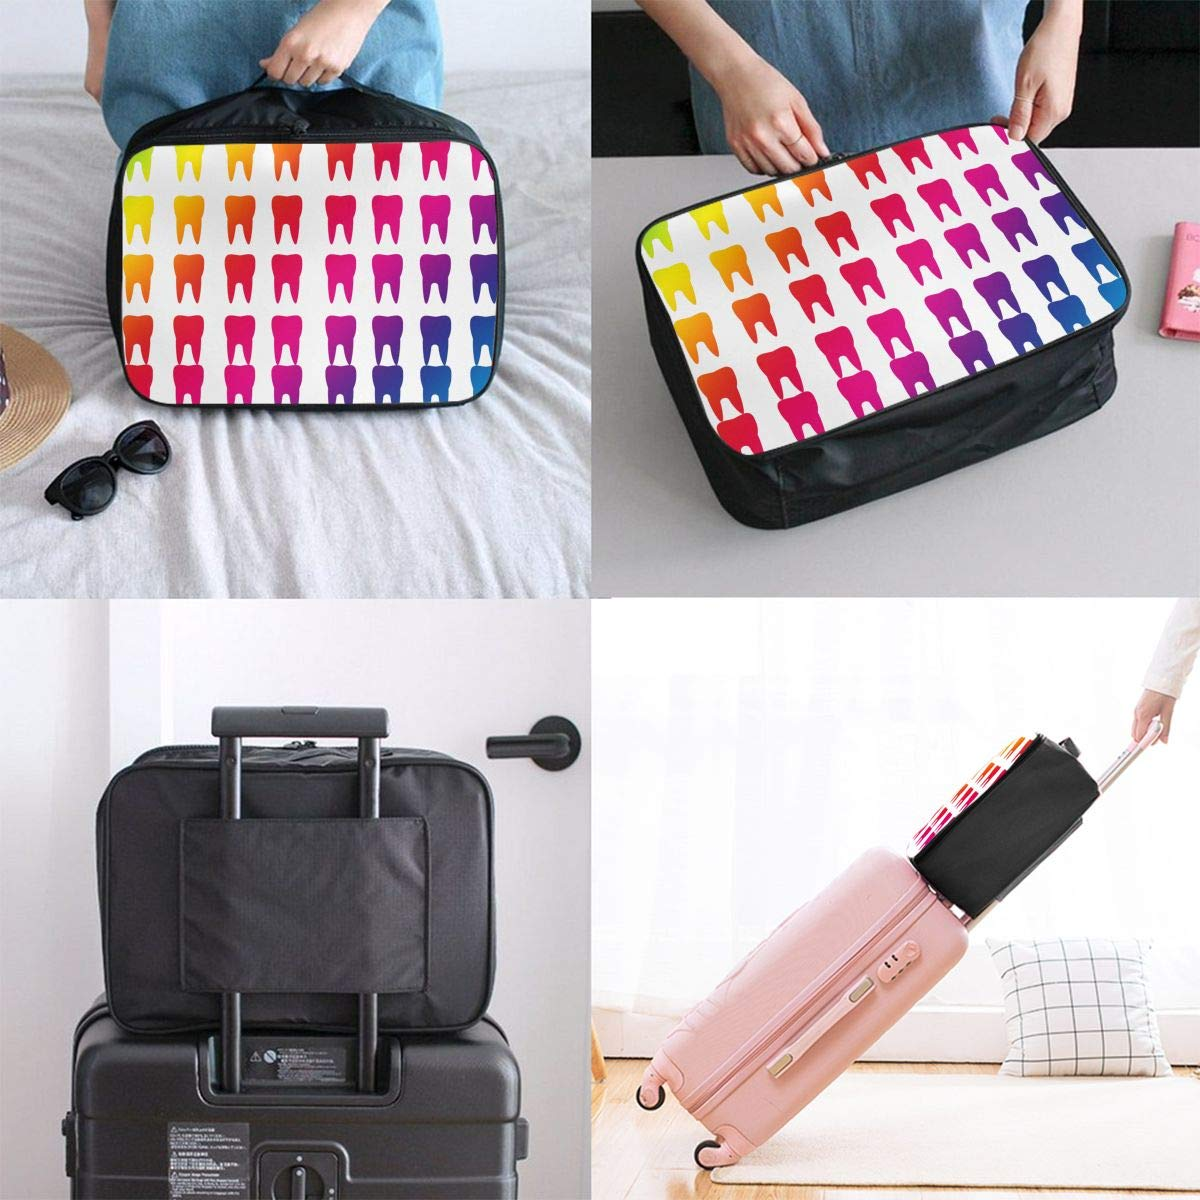 Teeth Molars Dental Colourful Travel Duffle Bag Large Lightweight Weekend Bags Luggage Bag Water Repellent Luggage Duffel Bag For Sports Tote Bag In Trolley Handle Holiday